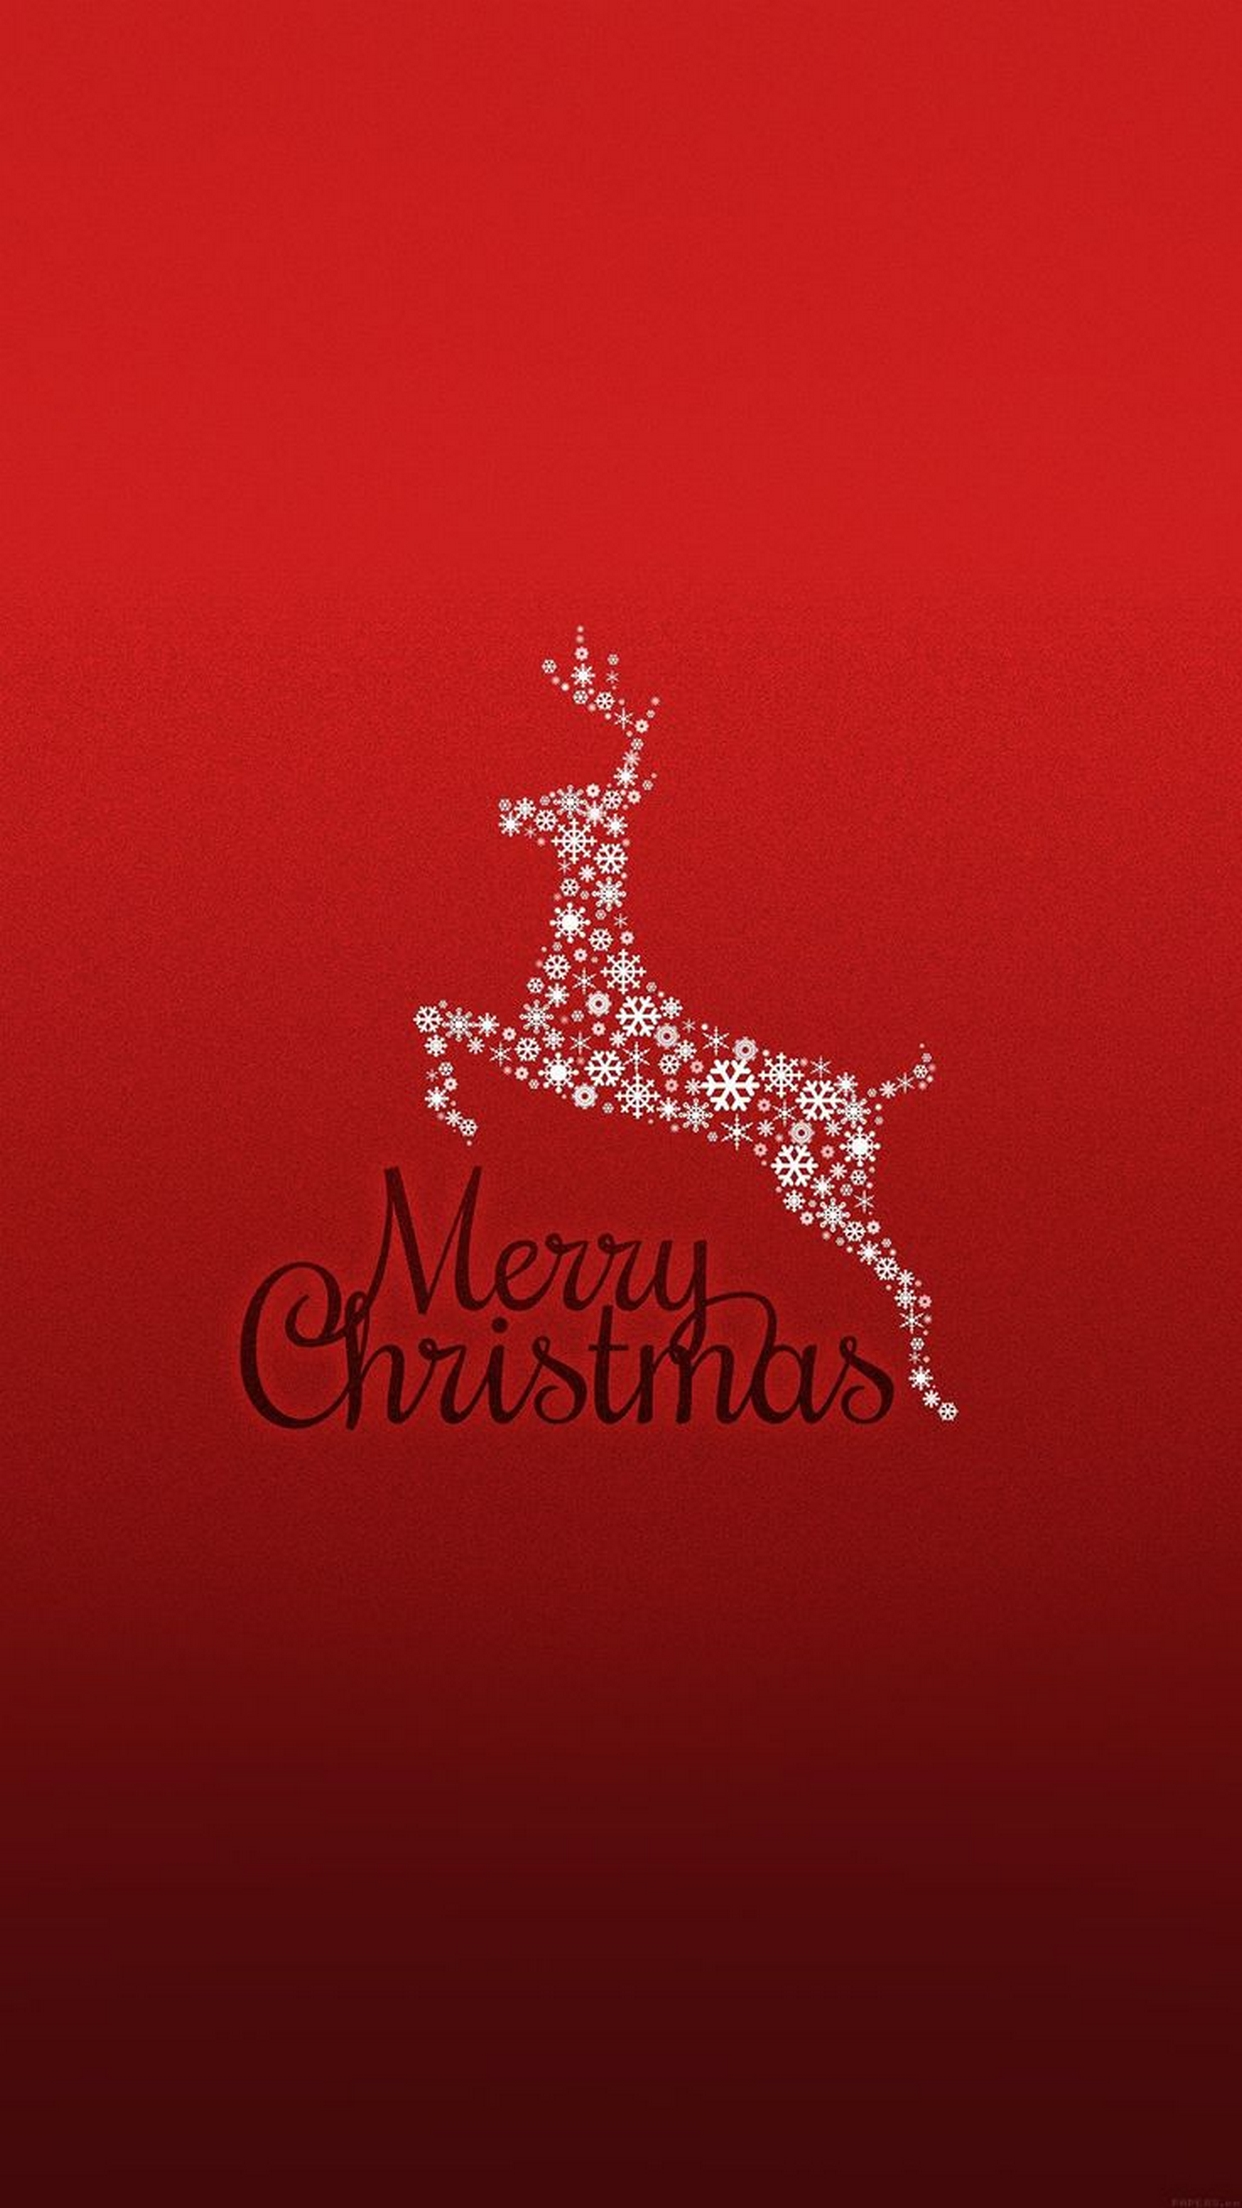 32 Christmas Wallpapers For Iphones